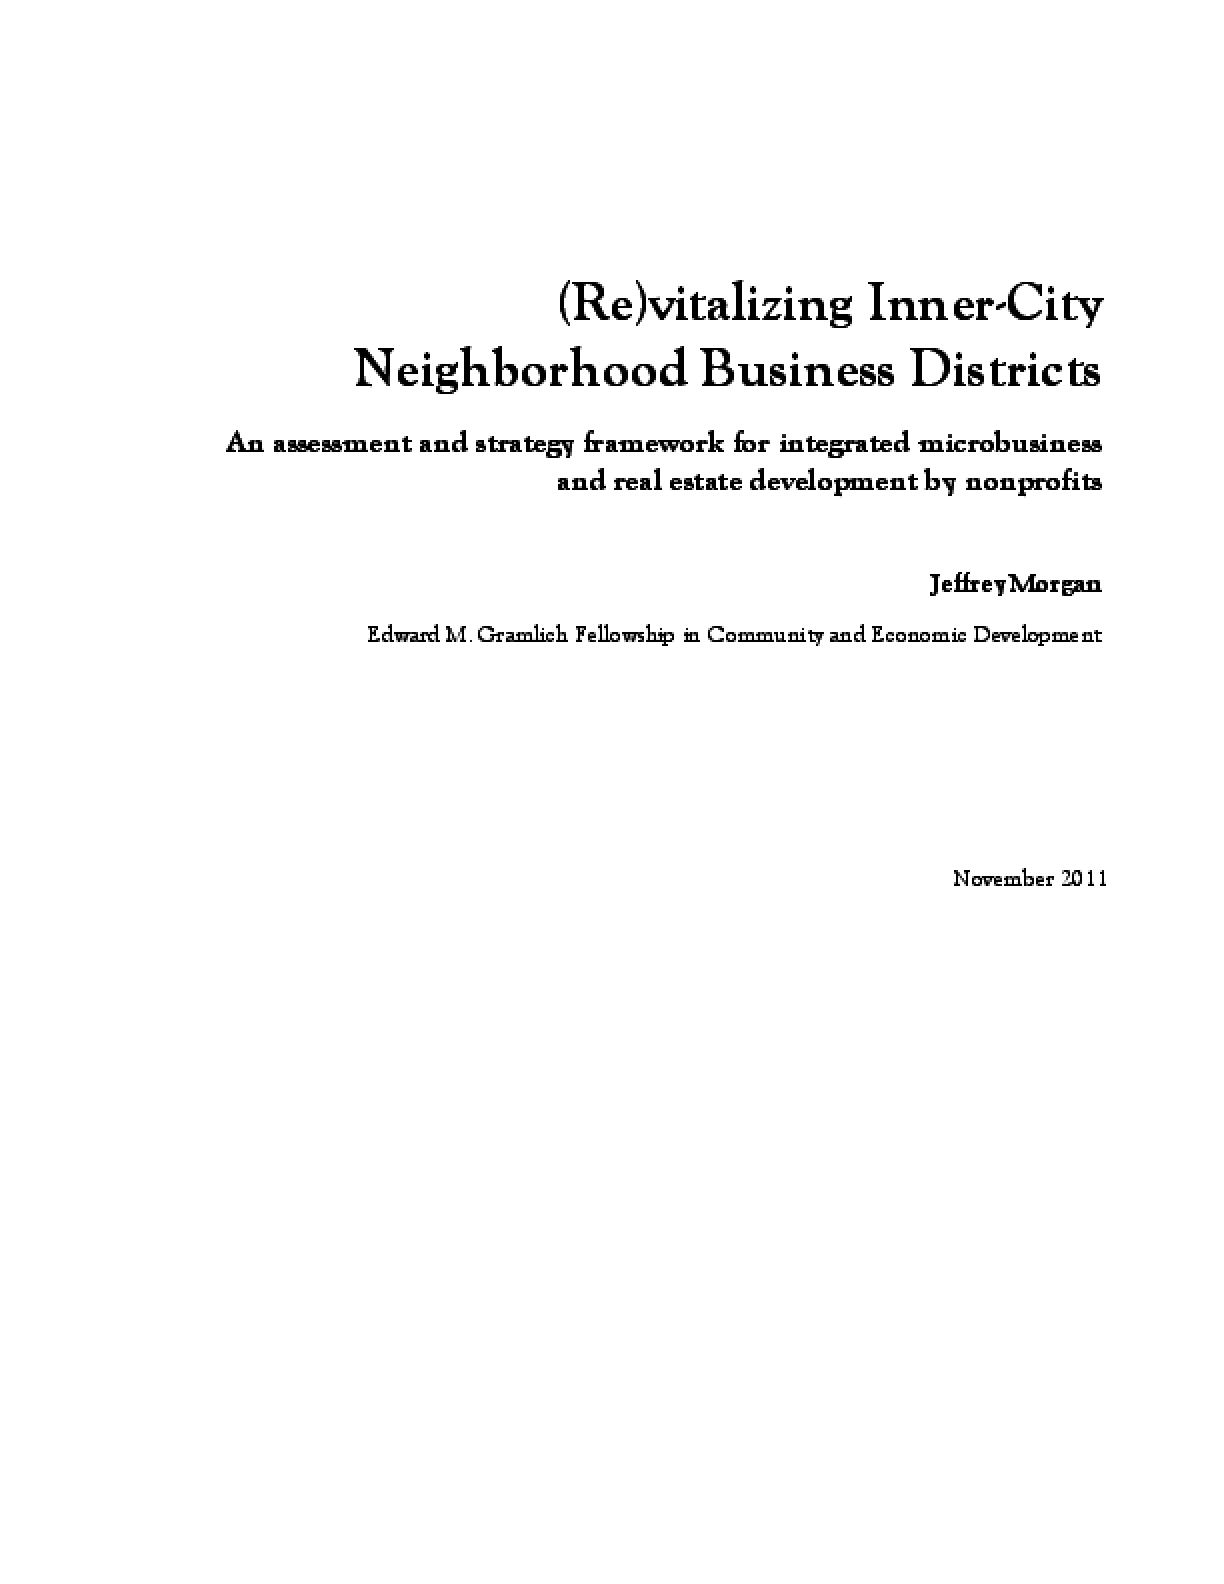 (Re)vitalizing Inner-City Neighborhood Business Districts An Assessment and Strategy Framework for Integrated Microbusiness and Real Estate Development by Nonprofits